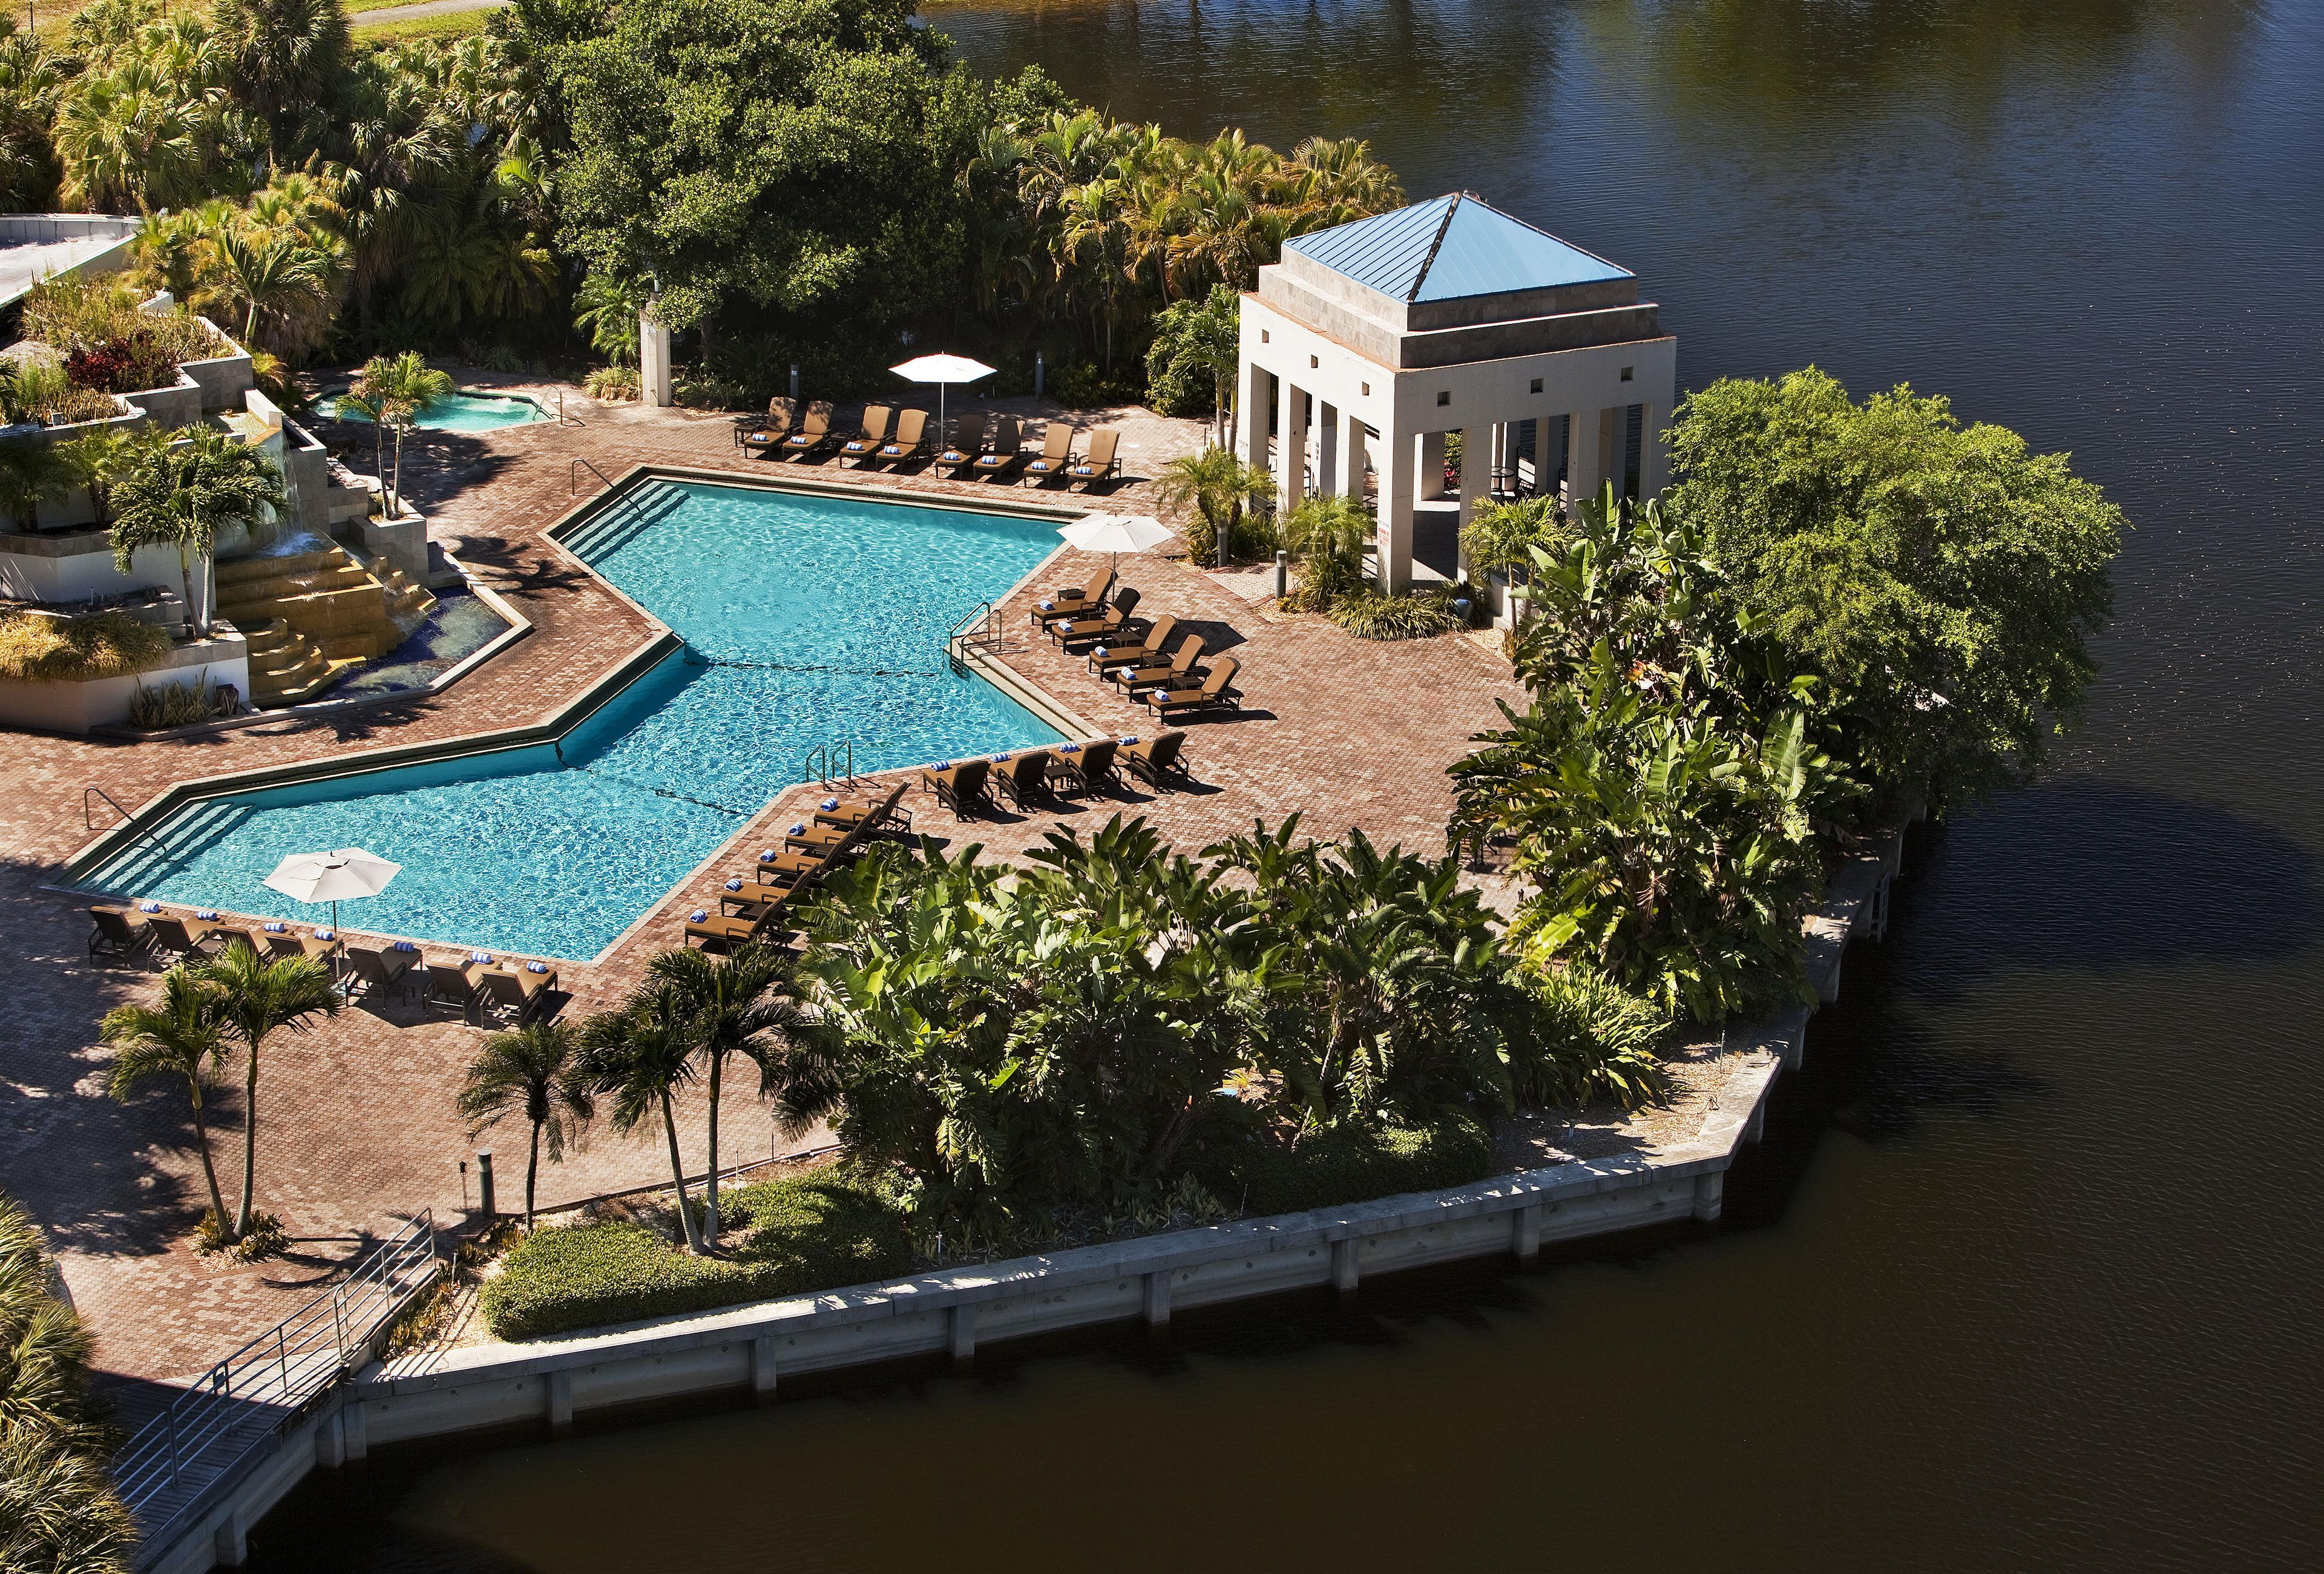 The Westin Fort Lauderdale image 2